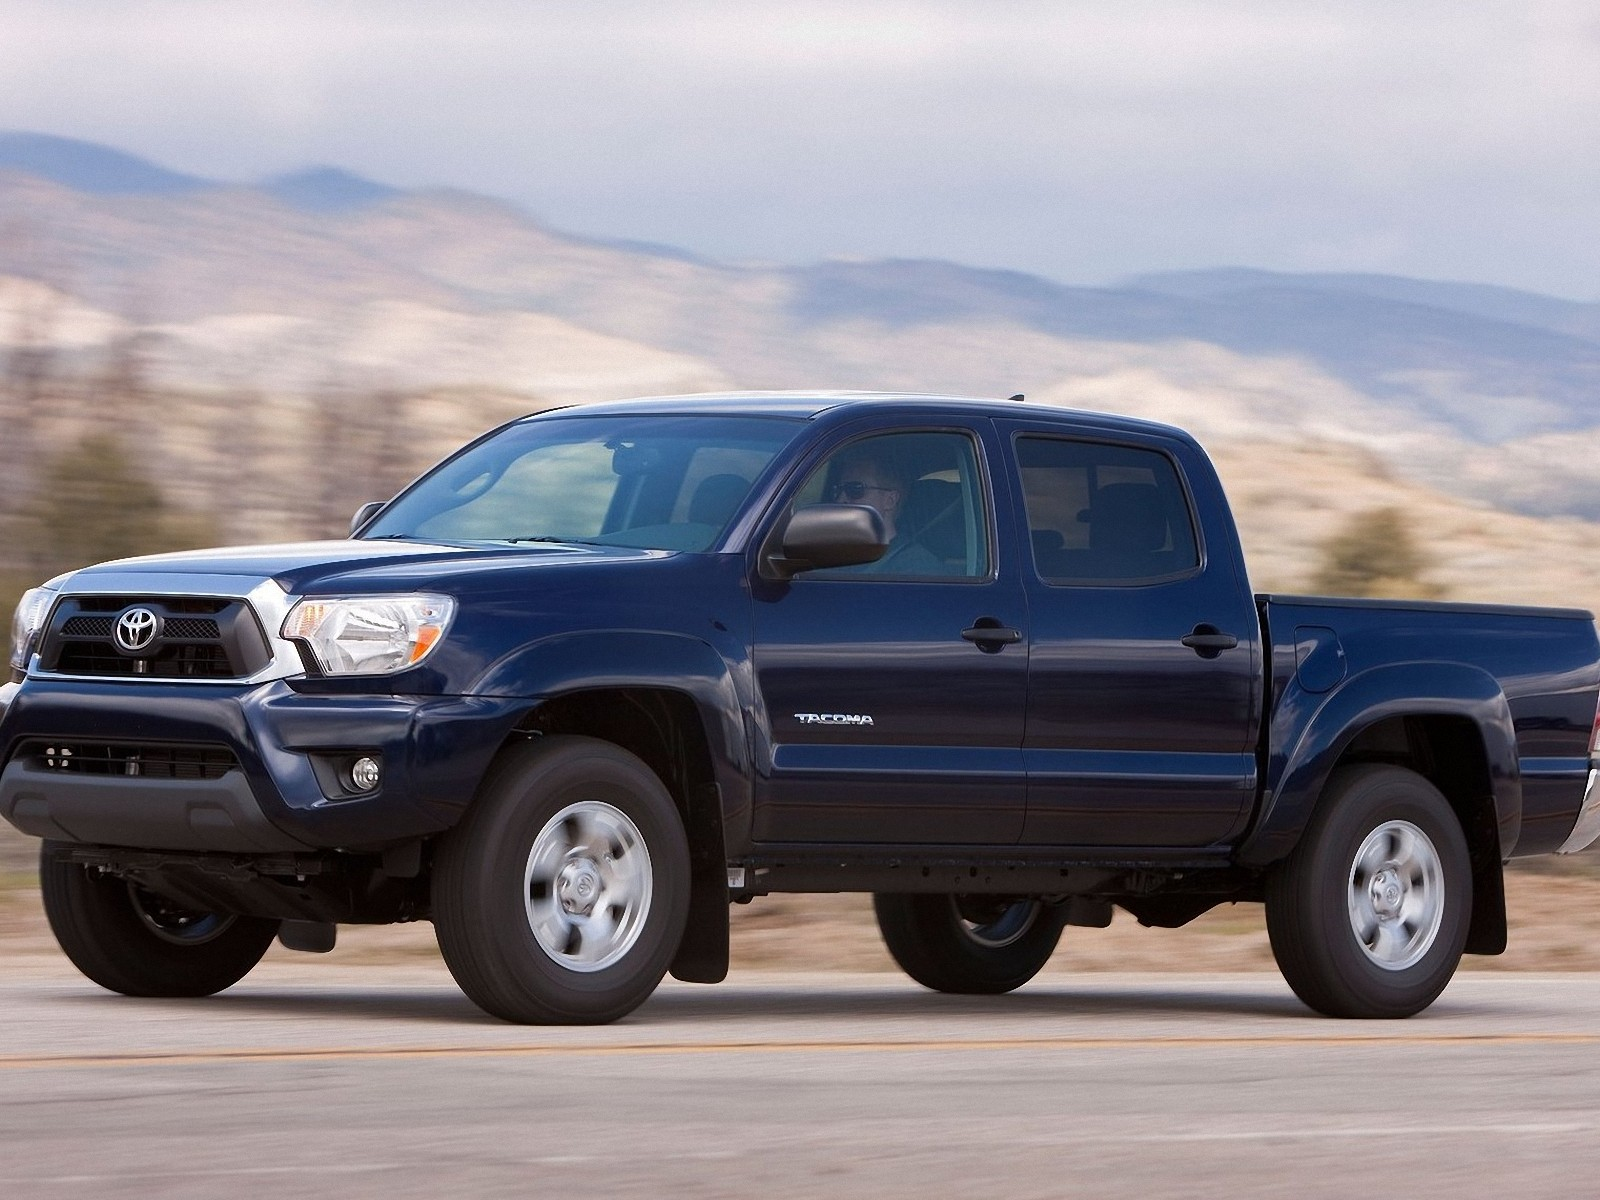 Toyota Tacoma 2012 WallpapersToyota Tacoma Wallpapers Pictures 1600x1200